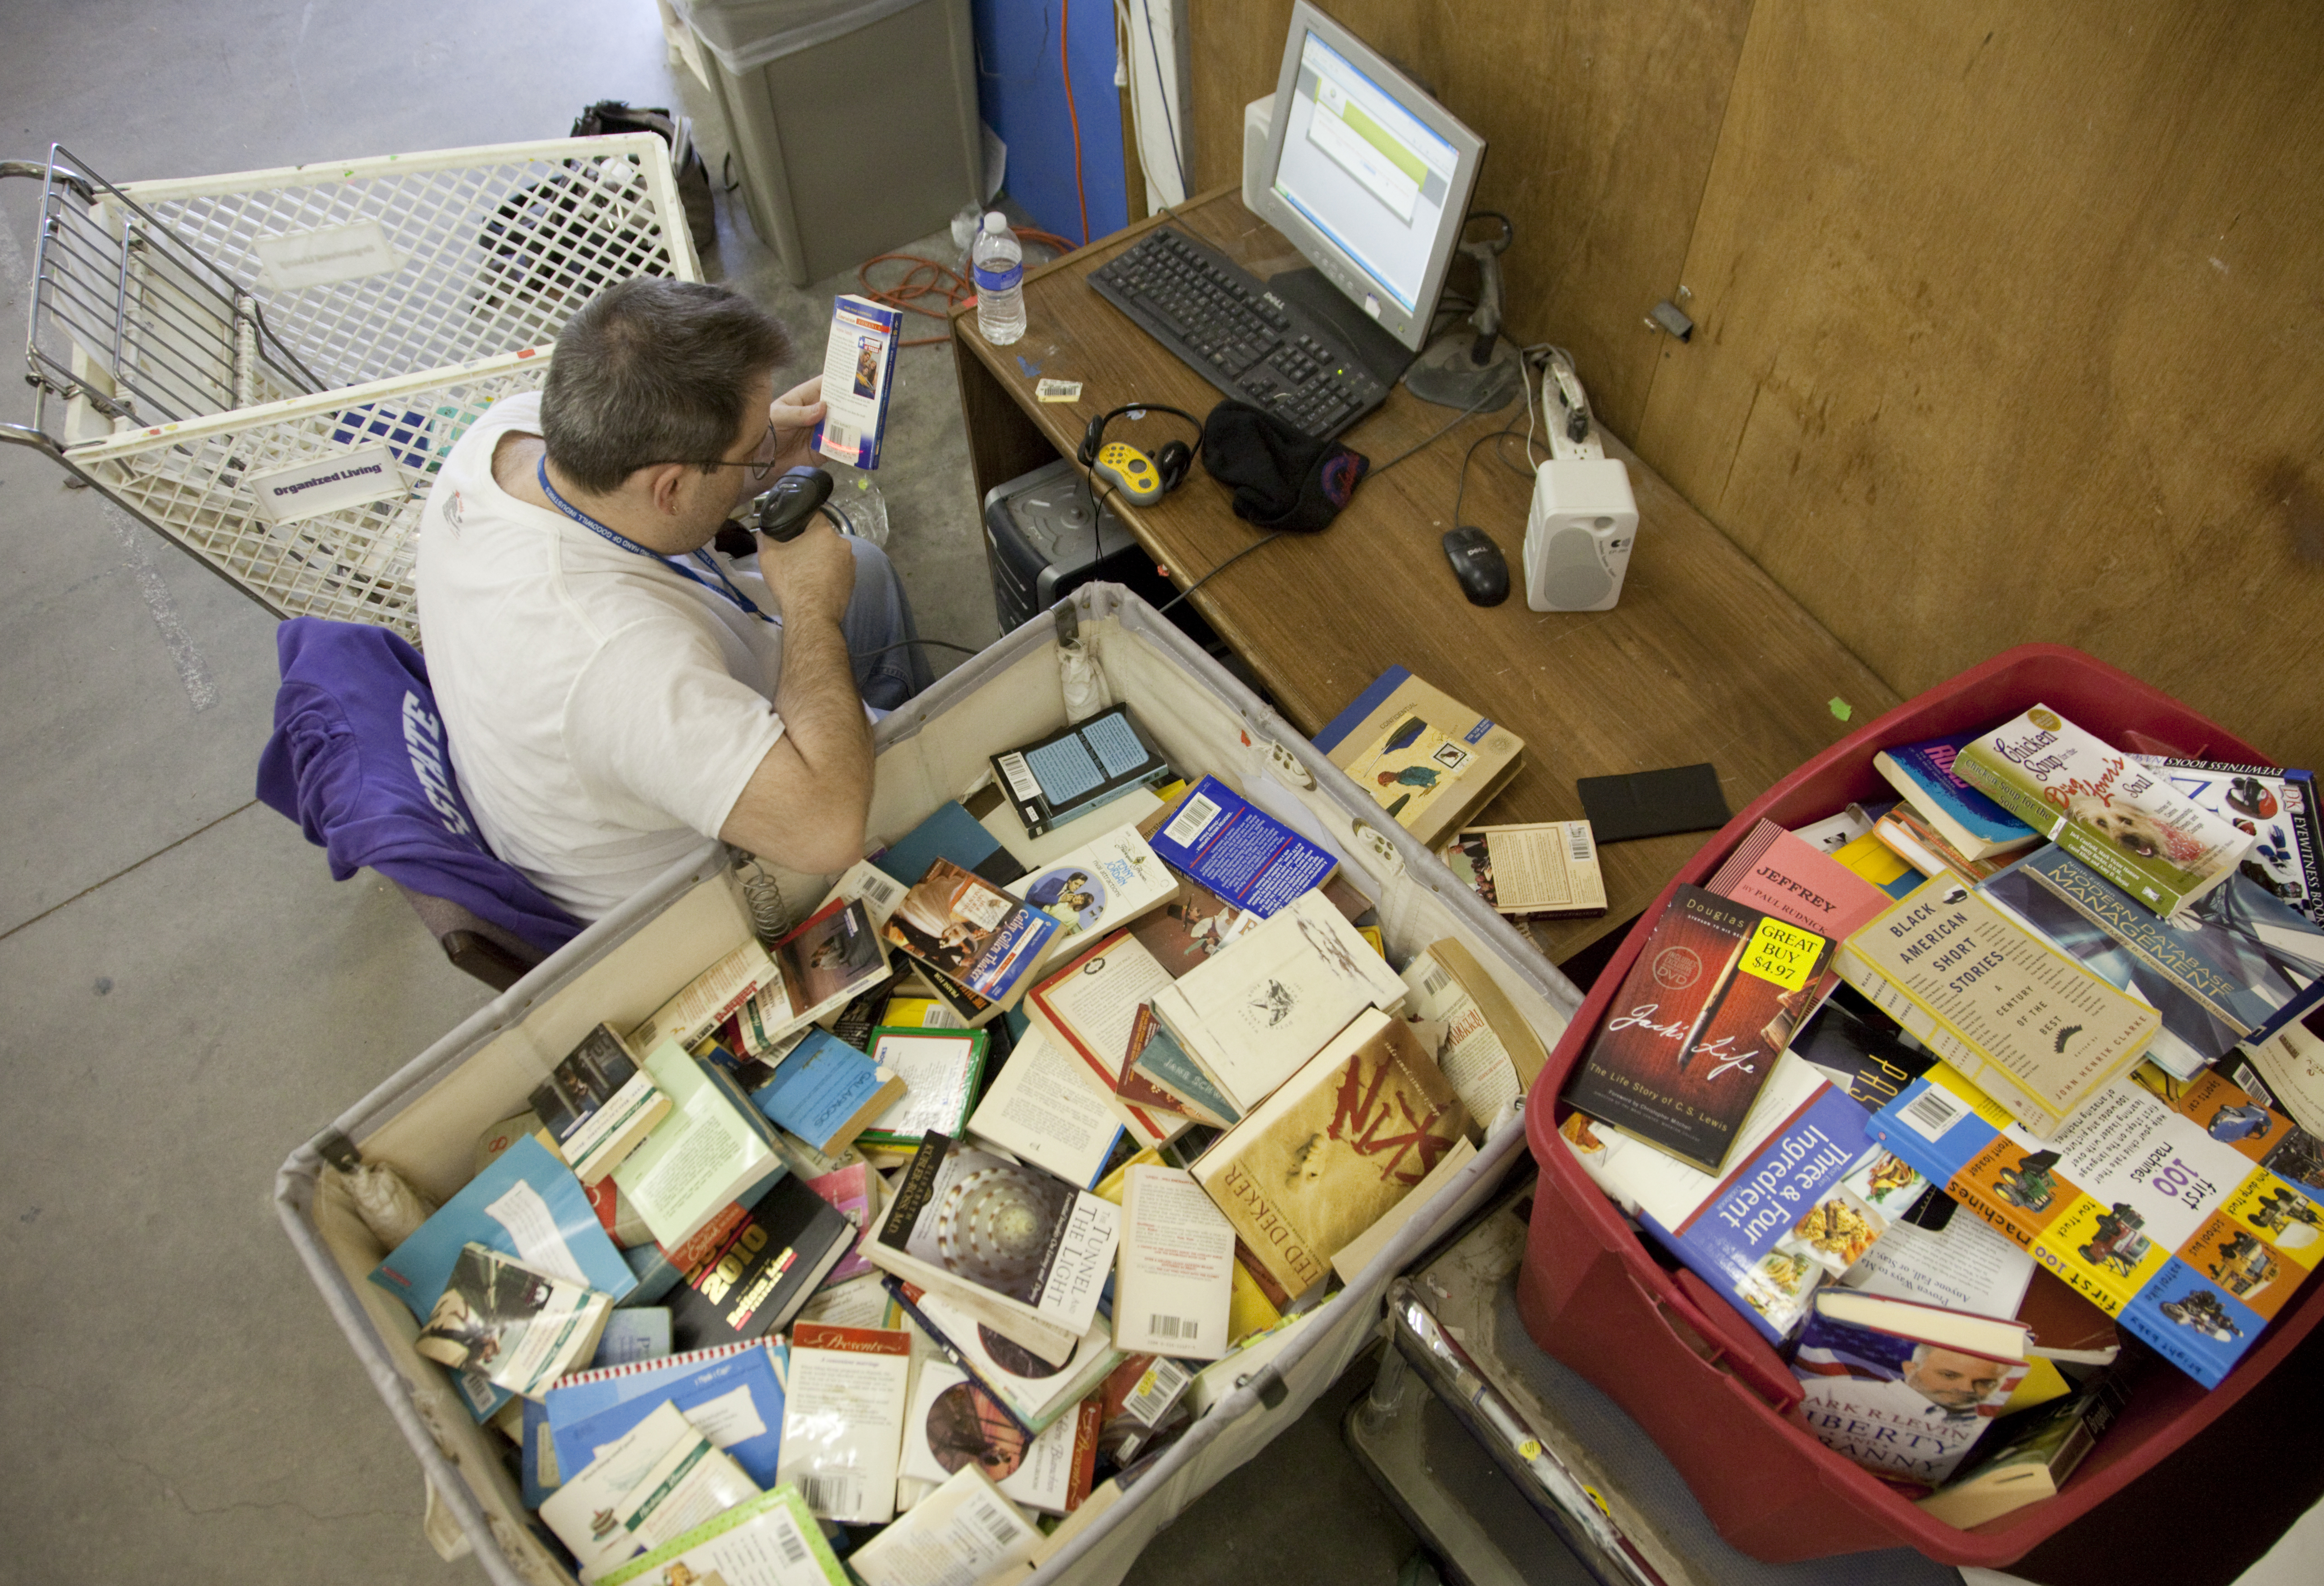 Goodwill stores turn donated books into sales on Amazon.com | News ...